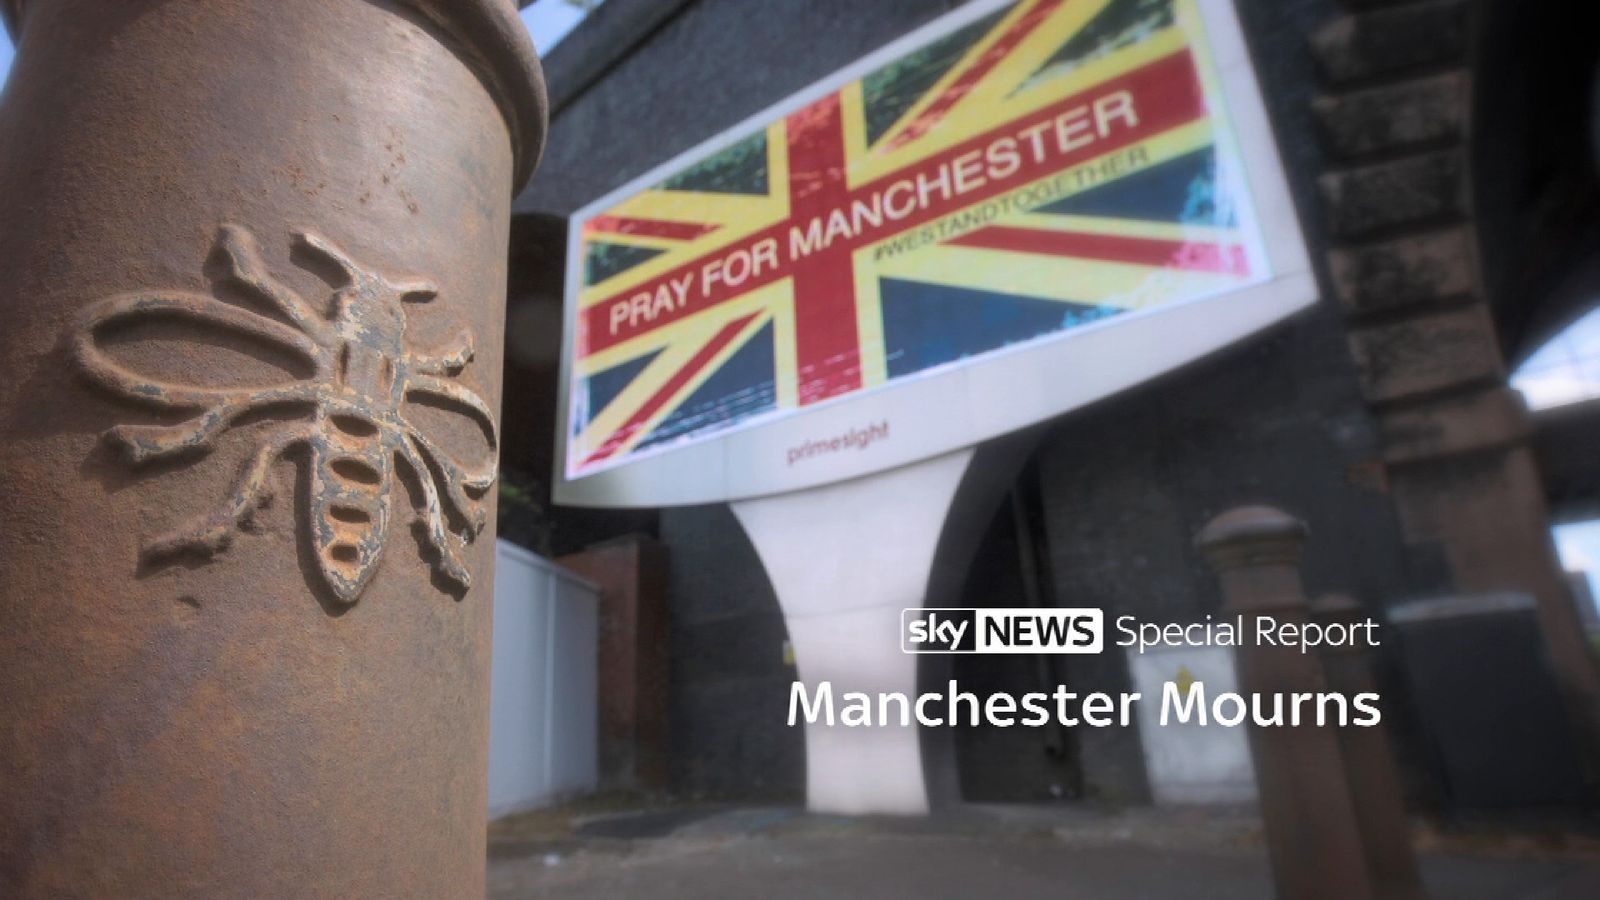 Sky News looks at how the city of Manchester pulled together after the horrific events of the Ariana Grande concert.